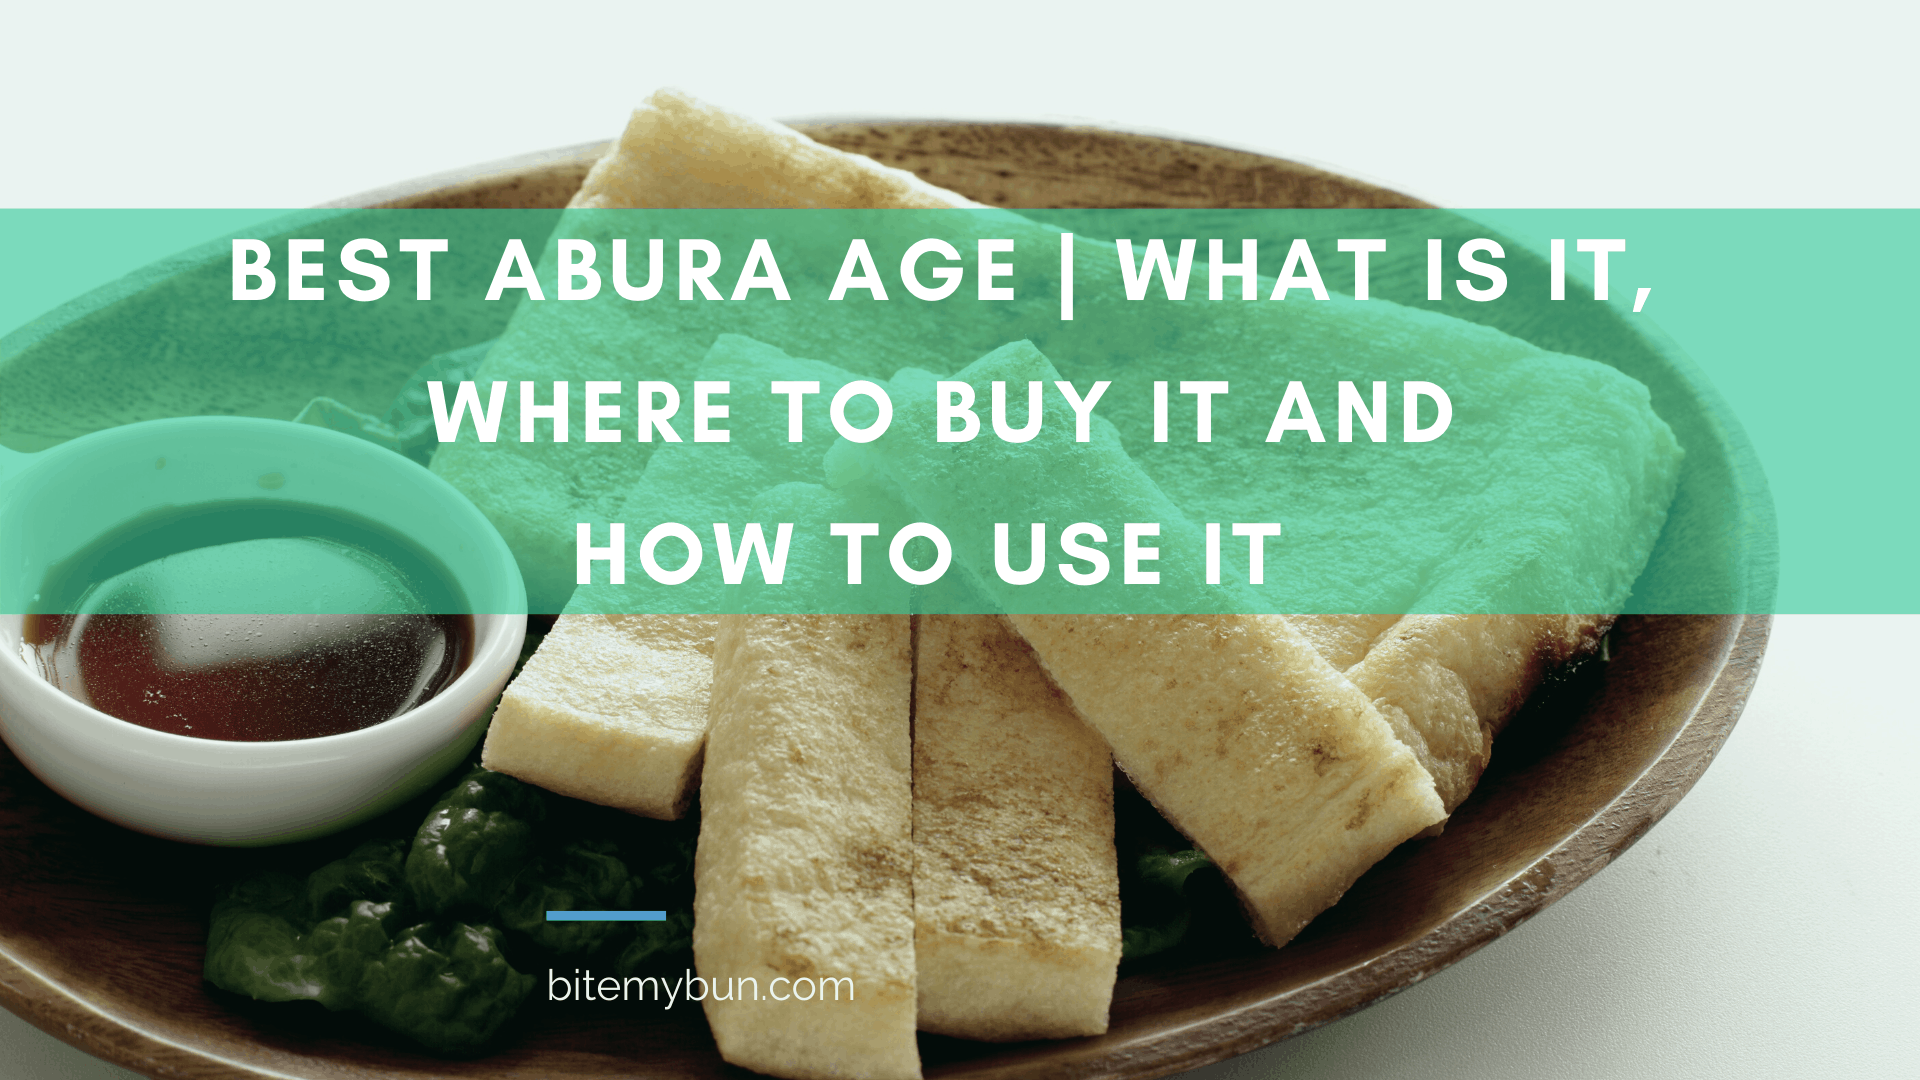 Best abura age   What is it, where to buy it and how to use it [full aburaage guide]